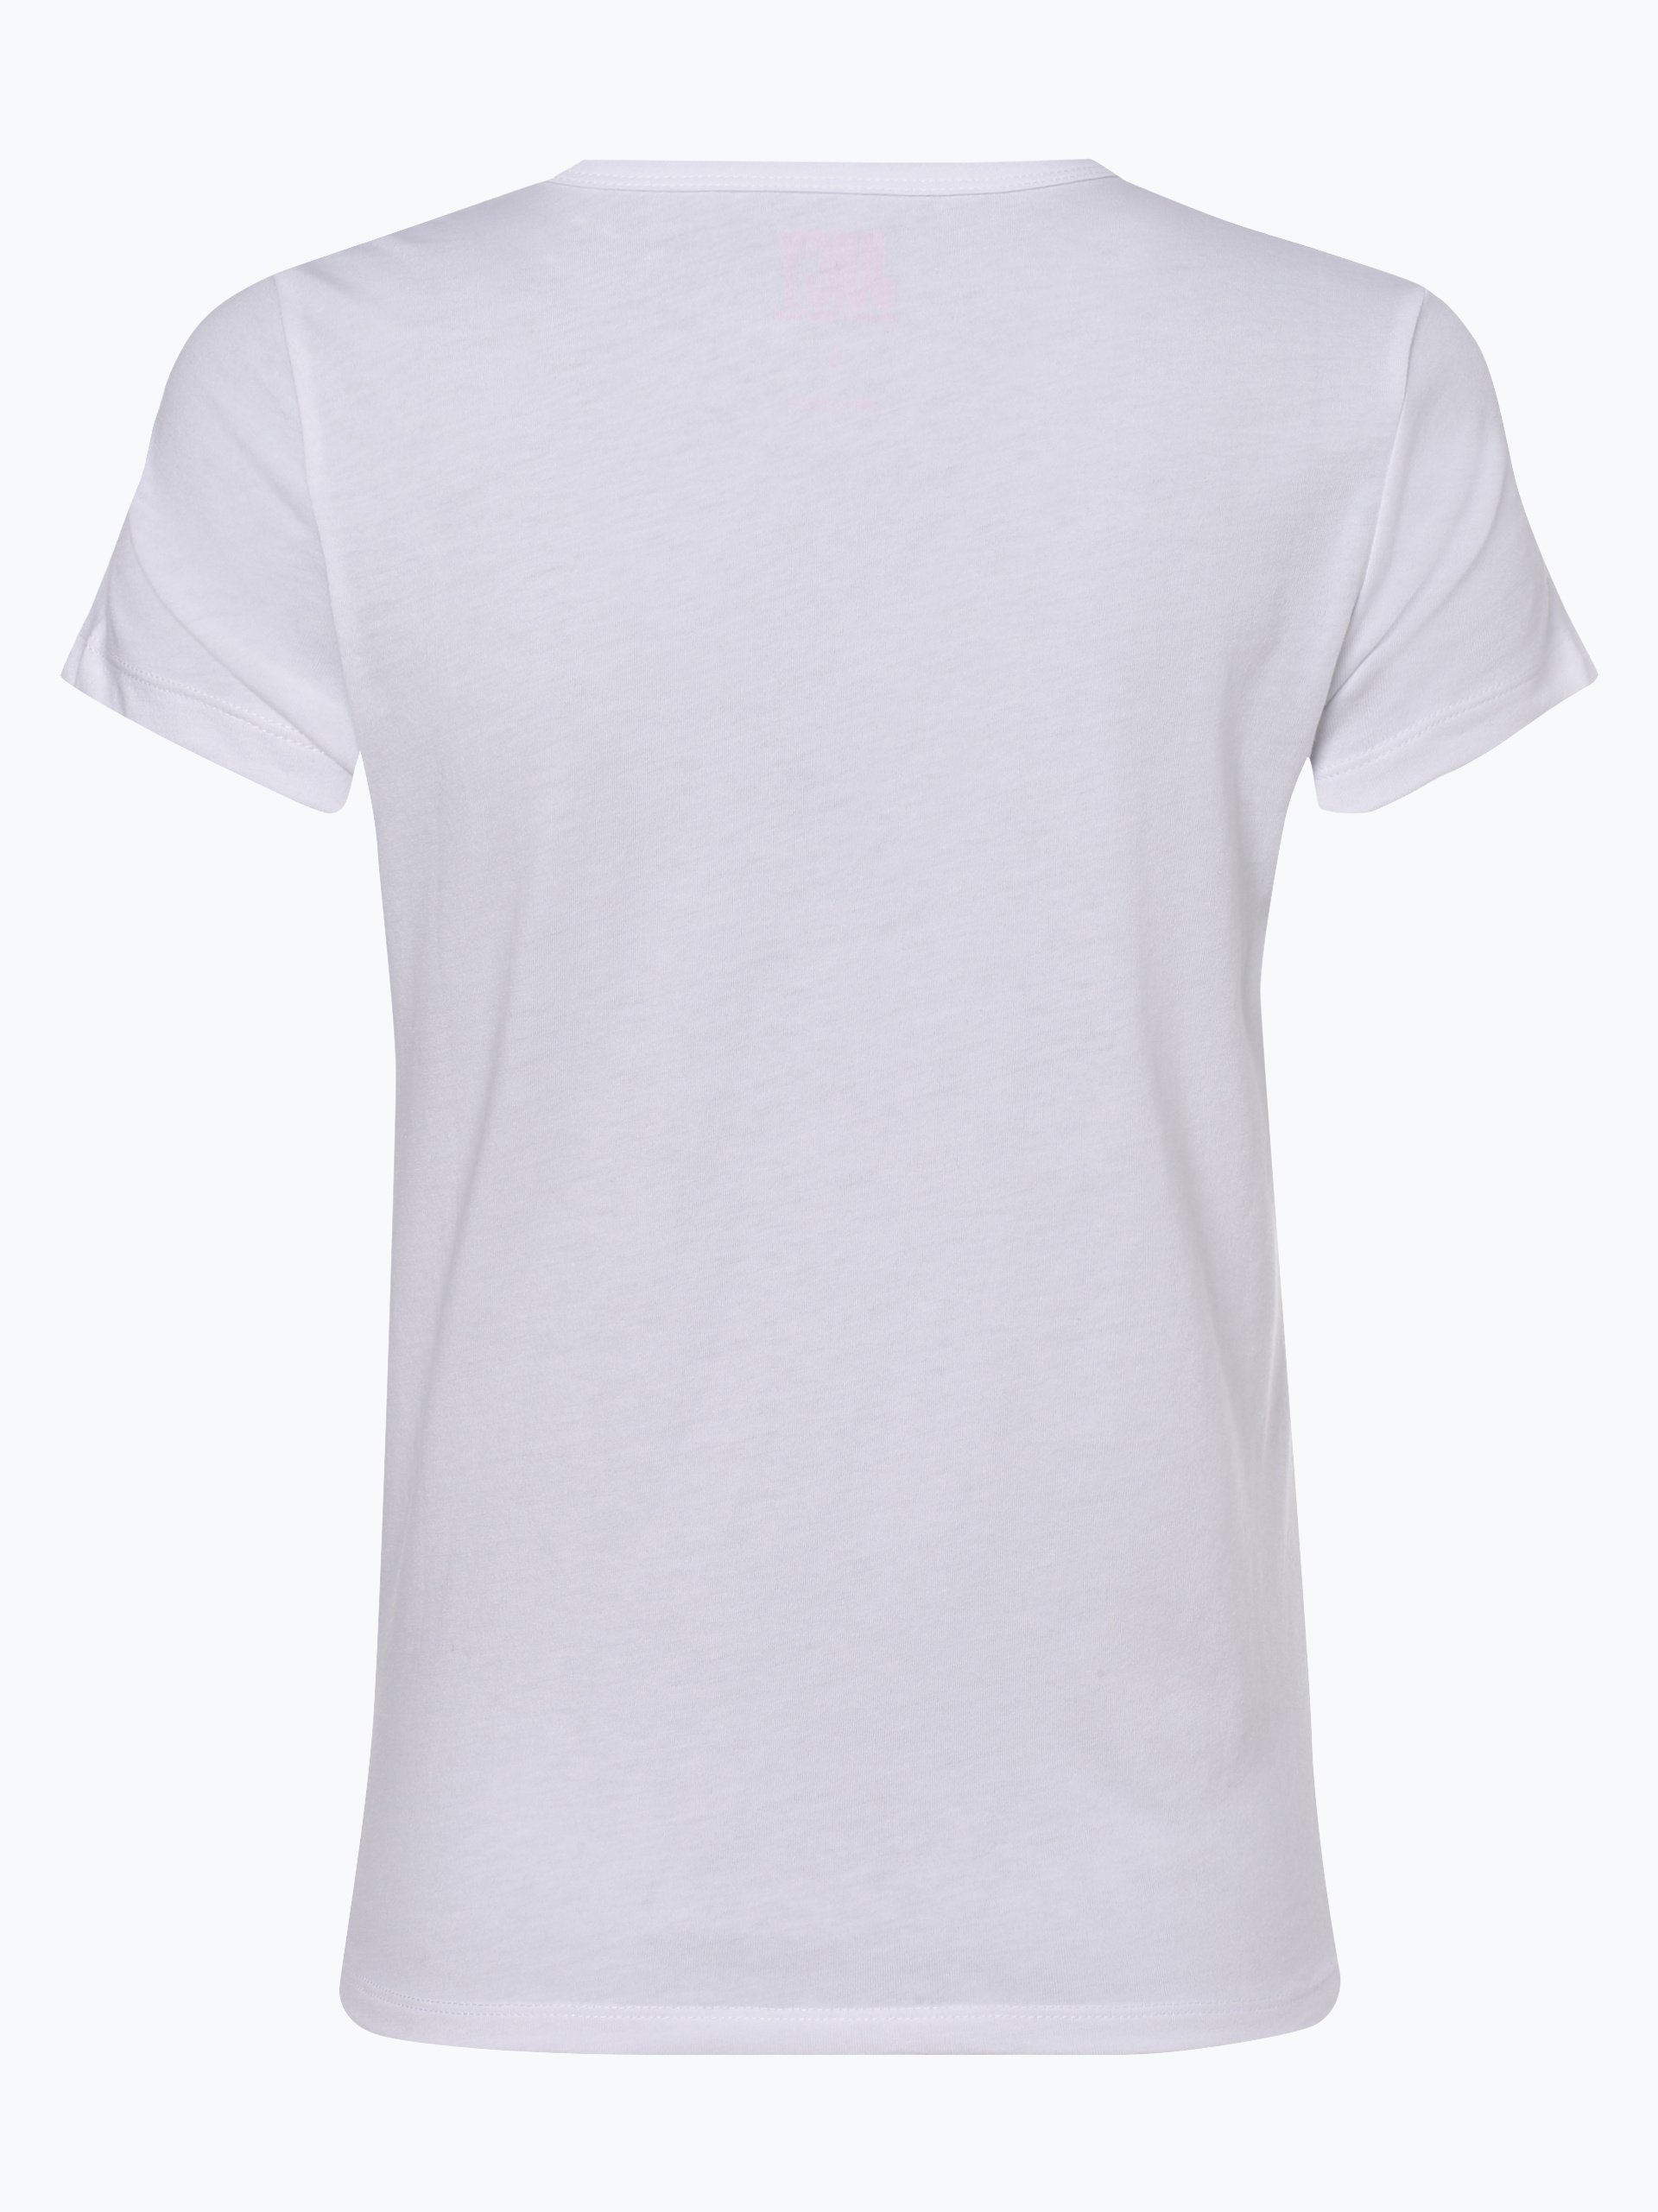 Juicy by Juicy Couture T-shirt damski